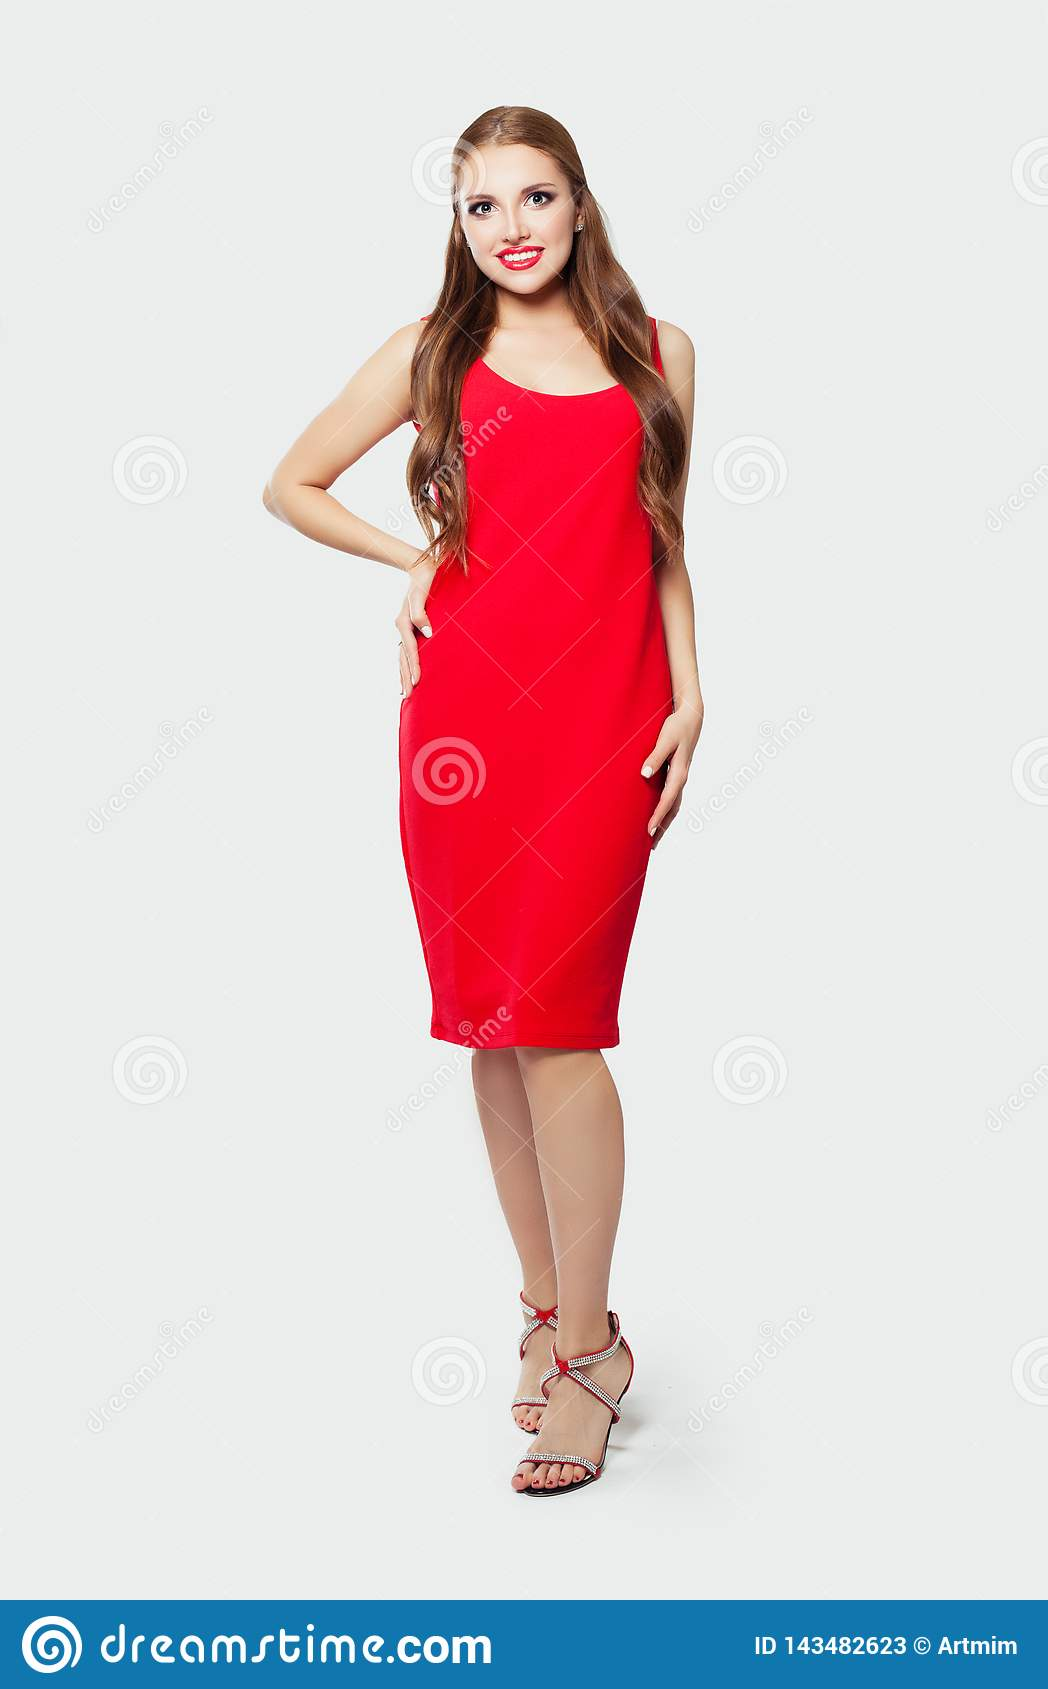 red dress white shoes Elegant Model Woman Wearing Red Dress And High Heels Shoes Standing Against  White Wall Background Stock Image - Image of happy, cute: 143482623